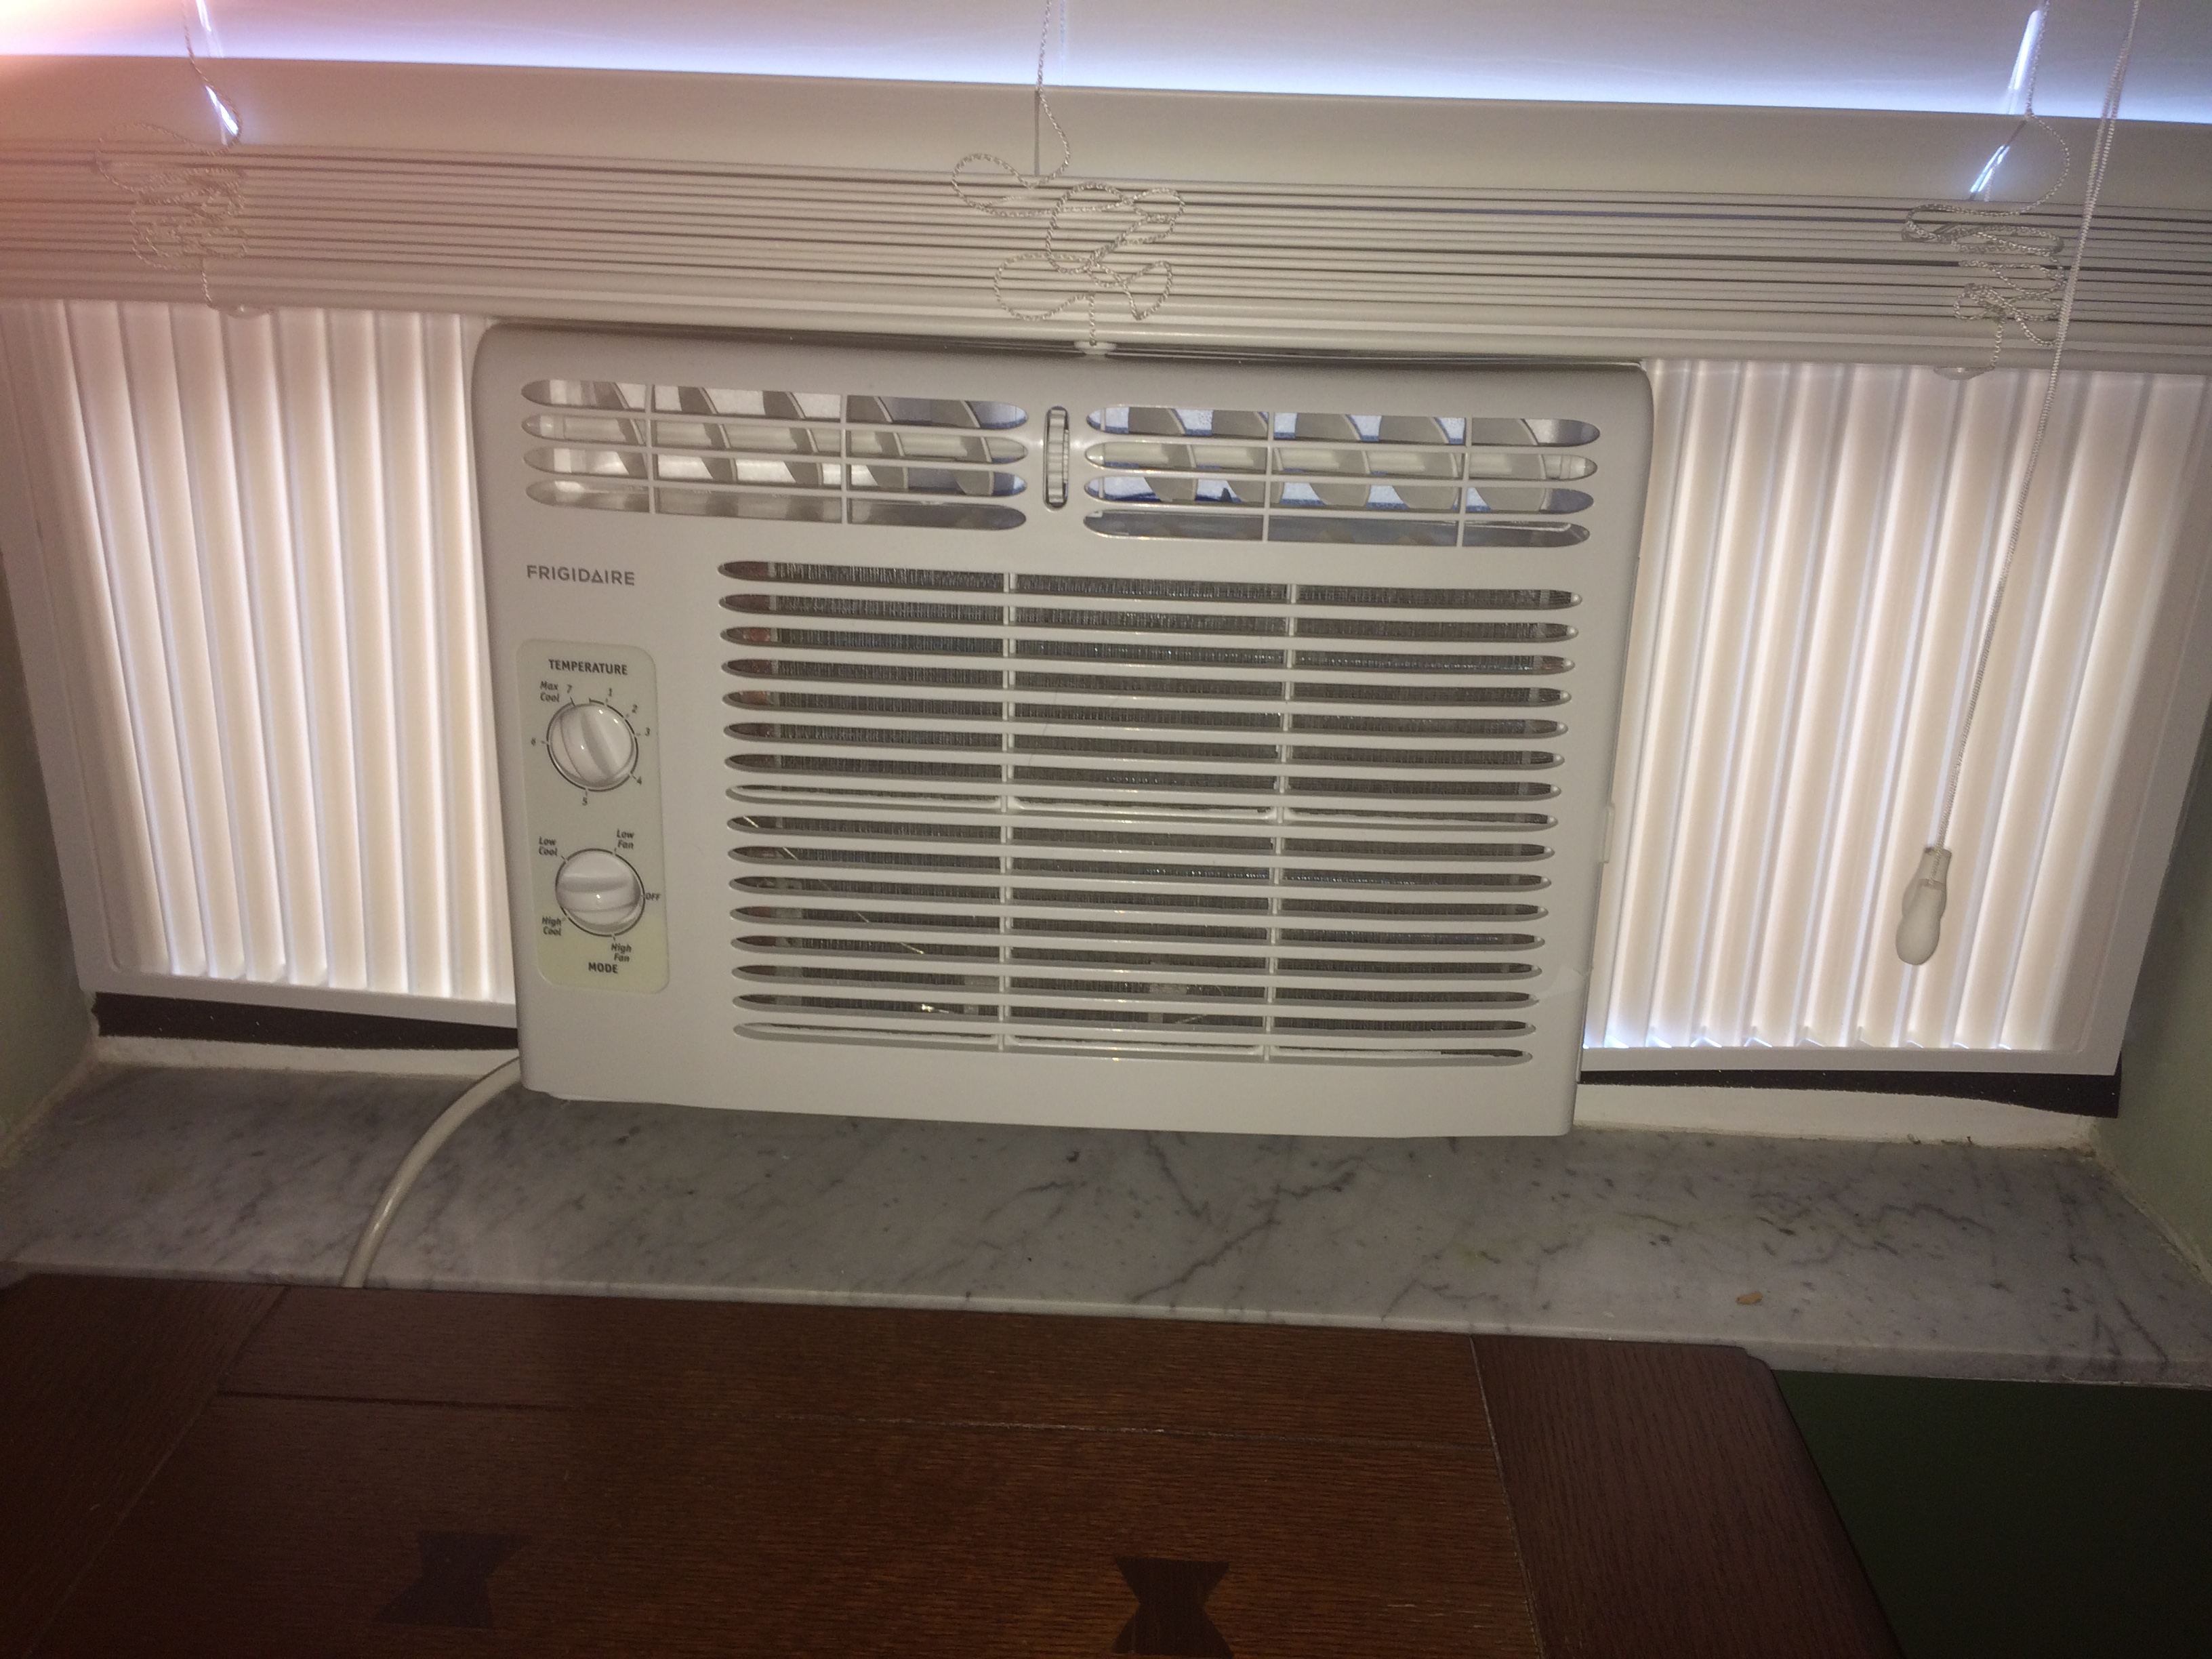 Frigidaire FFRA0511R1 5 is the best air conditioner window unit